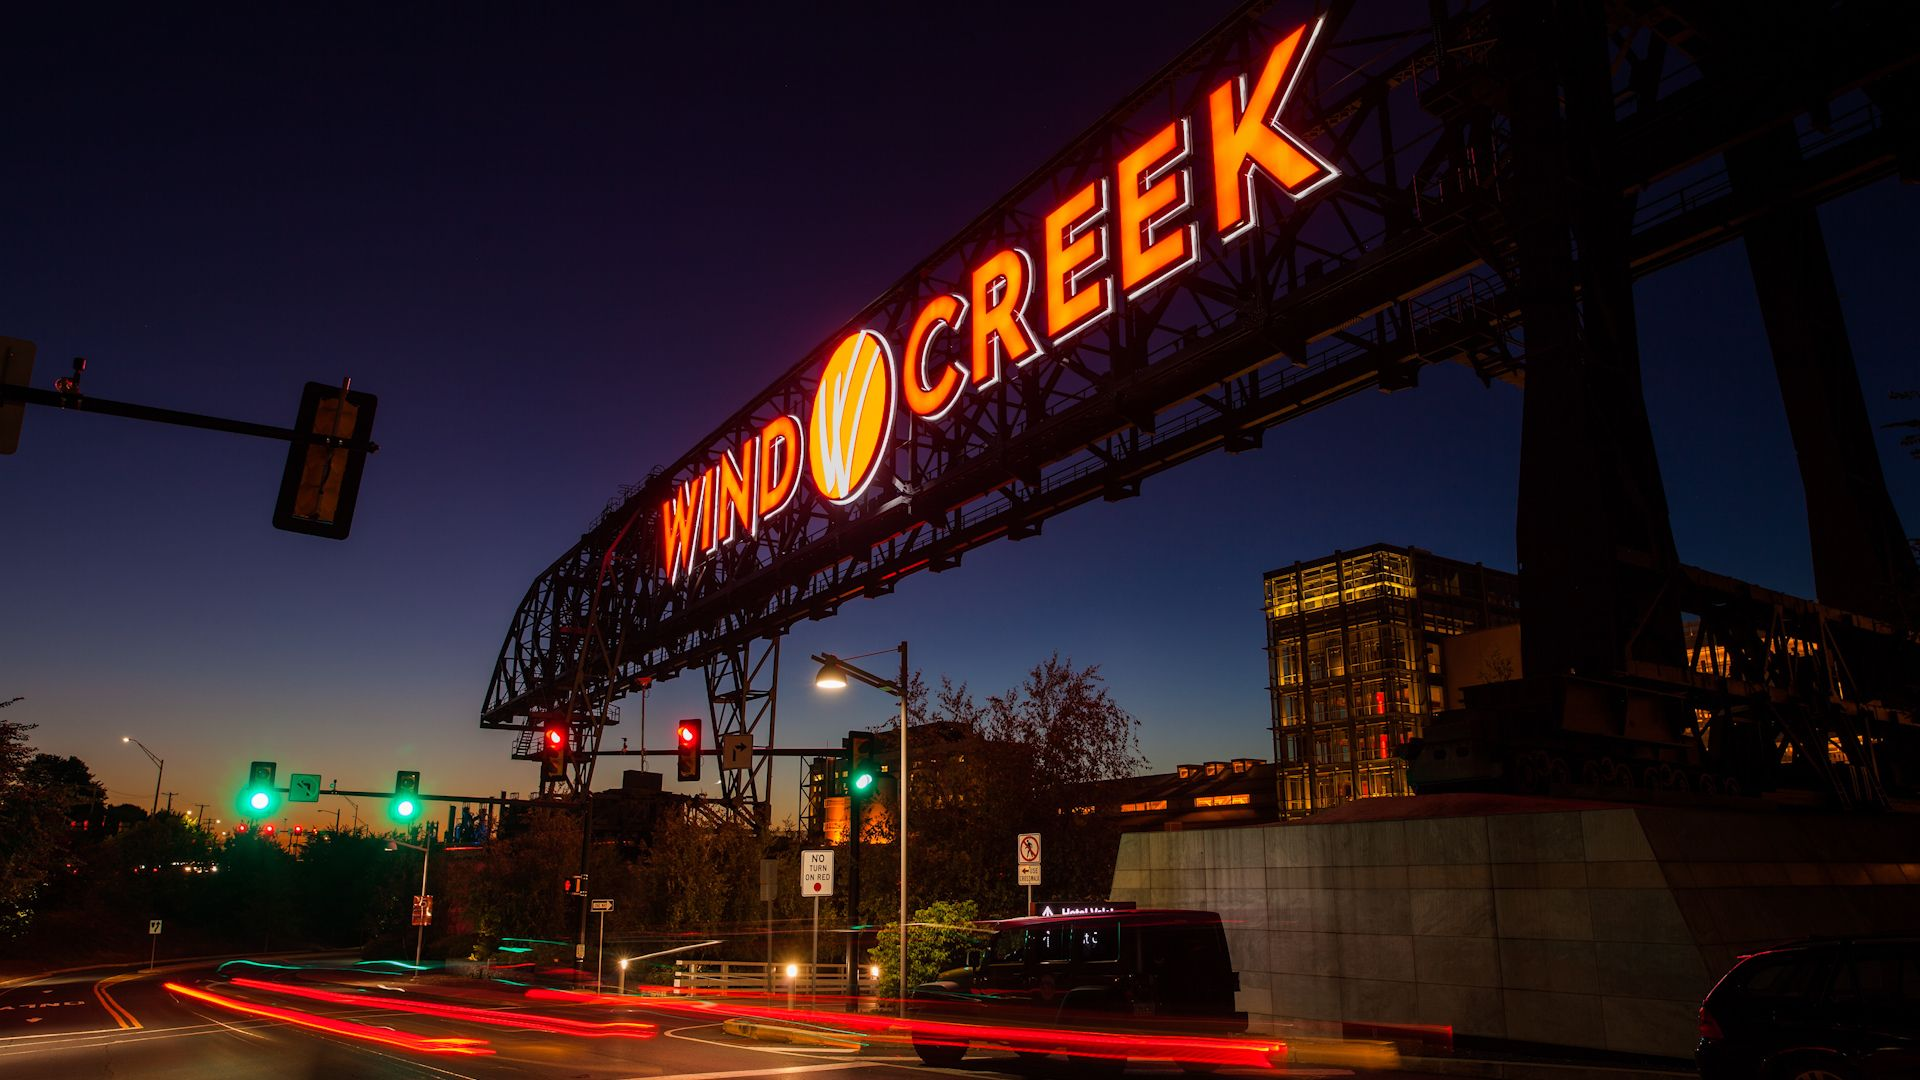 Wind Creek Web image.jpg